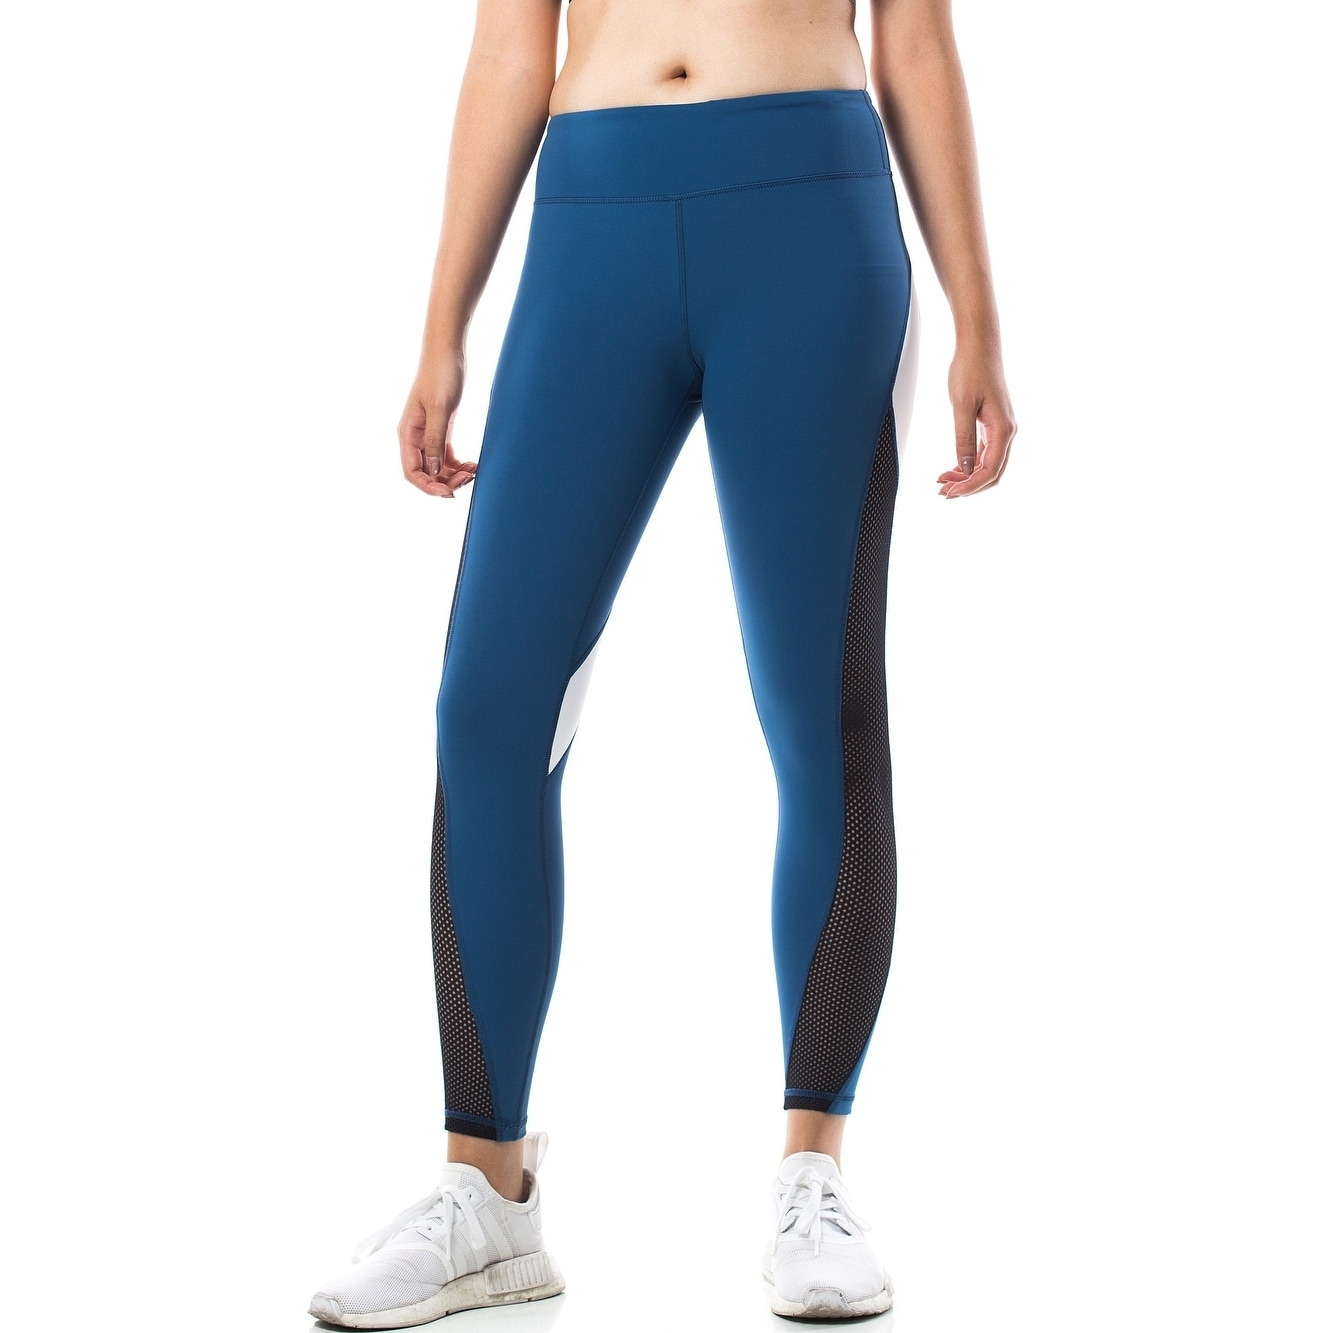 Shaping Sportlegging.Shop Figur Activ Body Shaping Sport Legging With Curved Style Lines